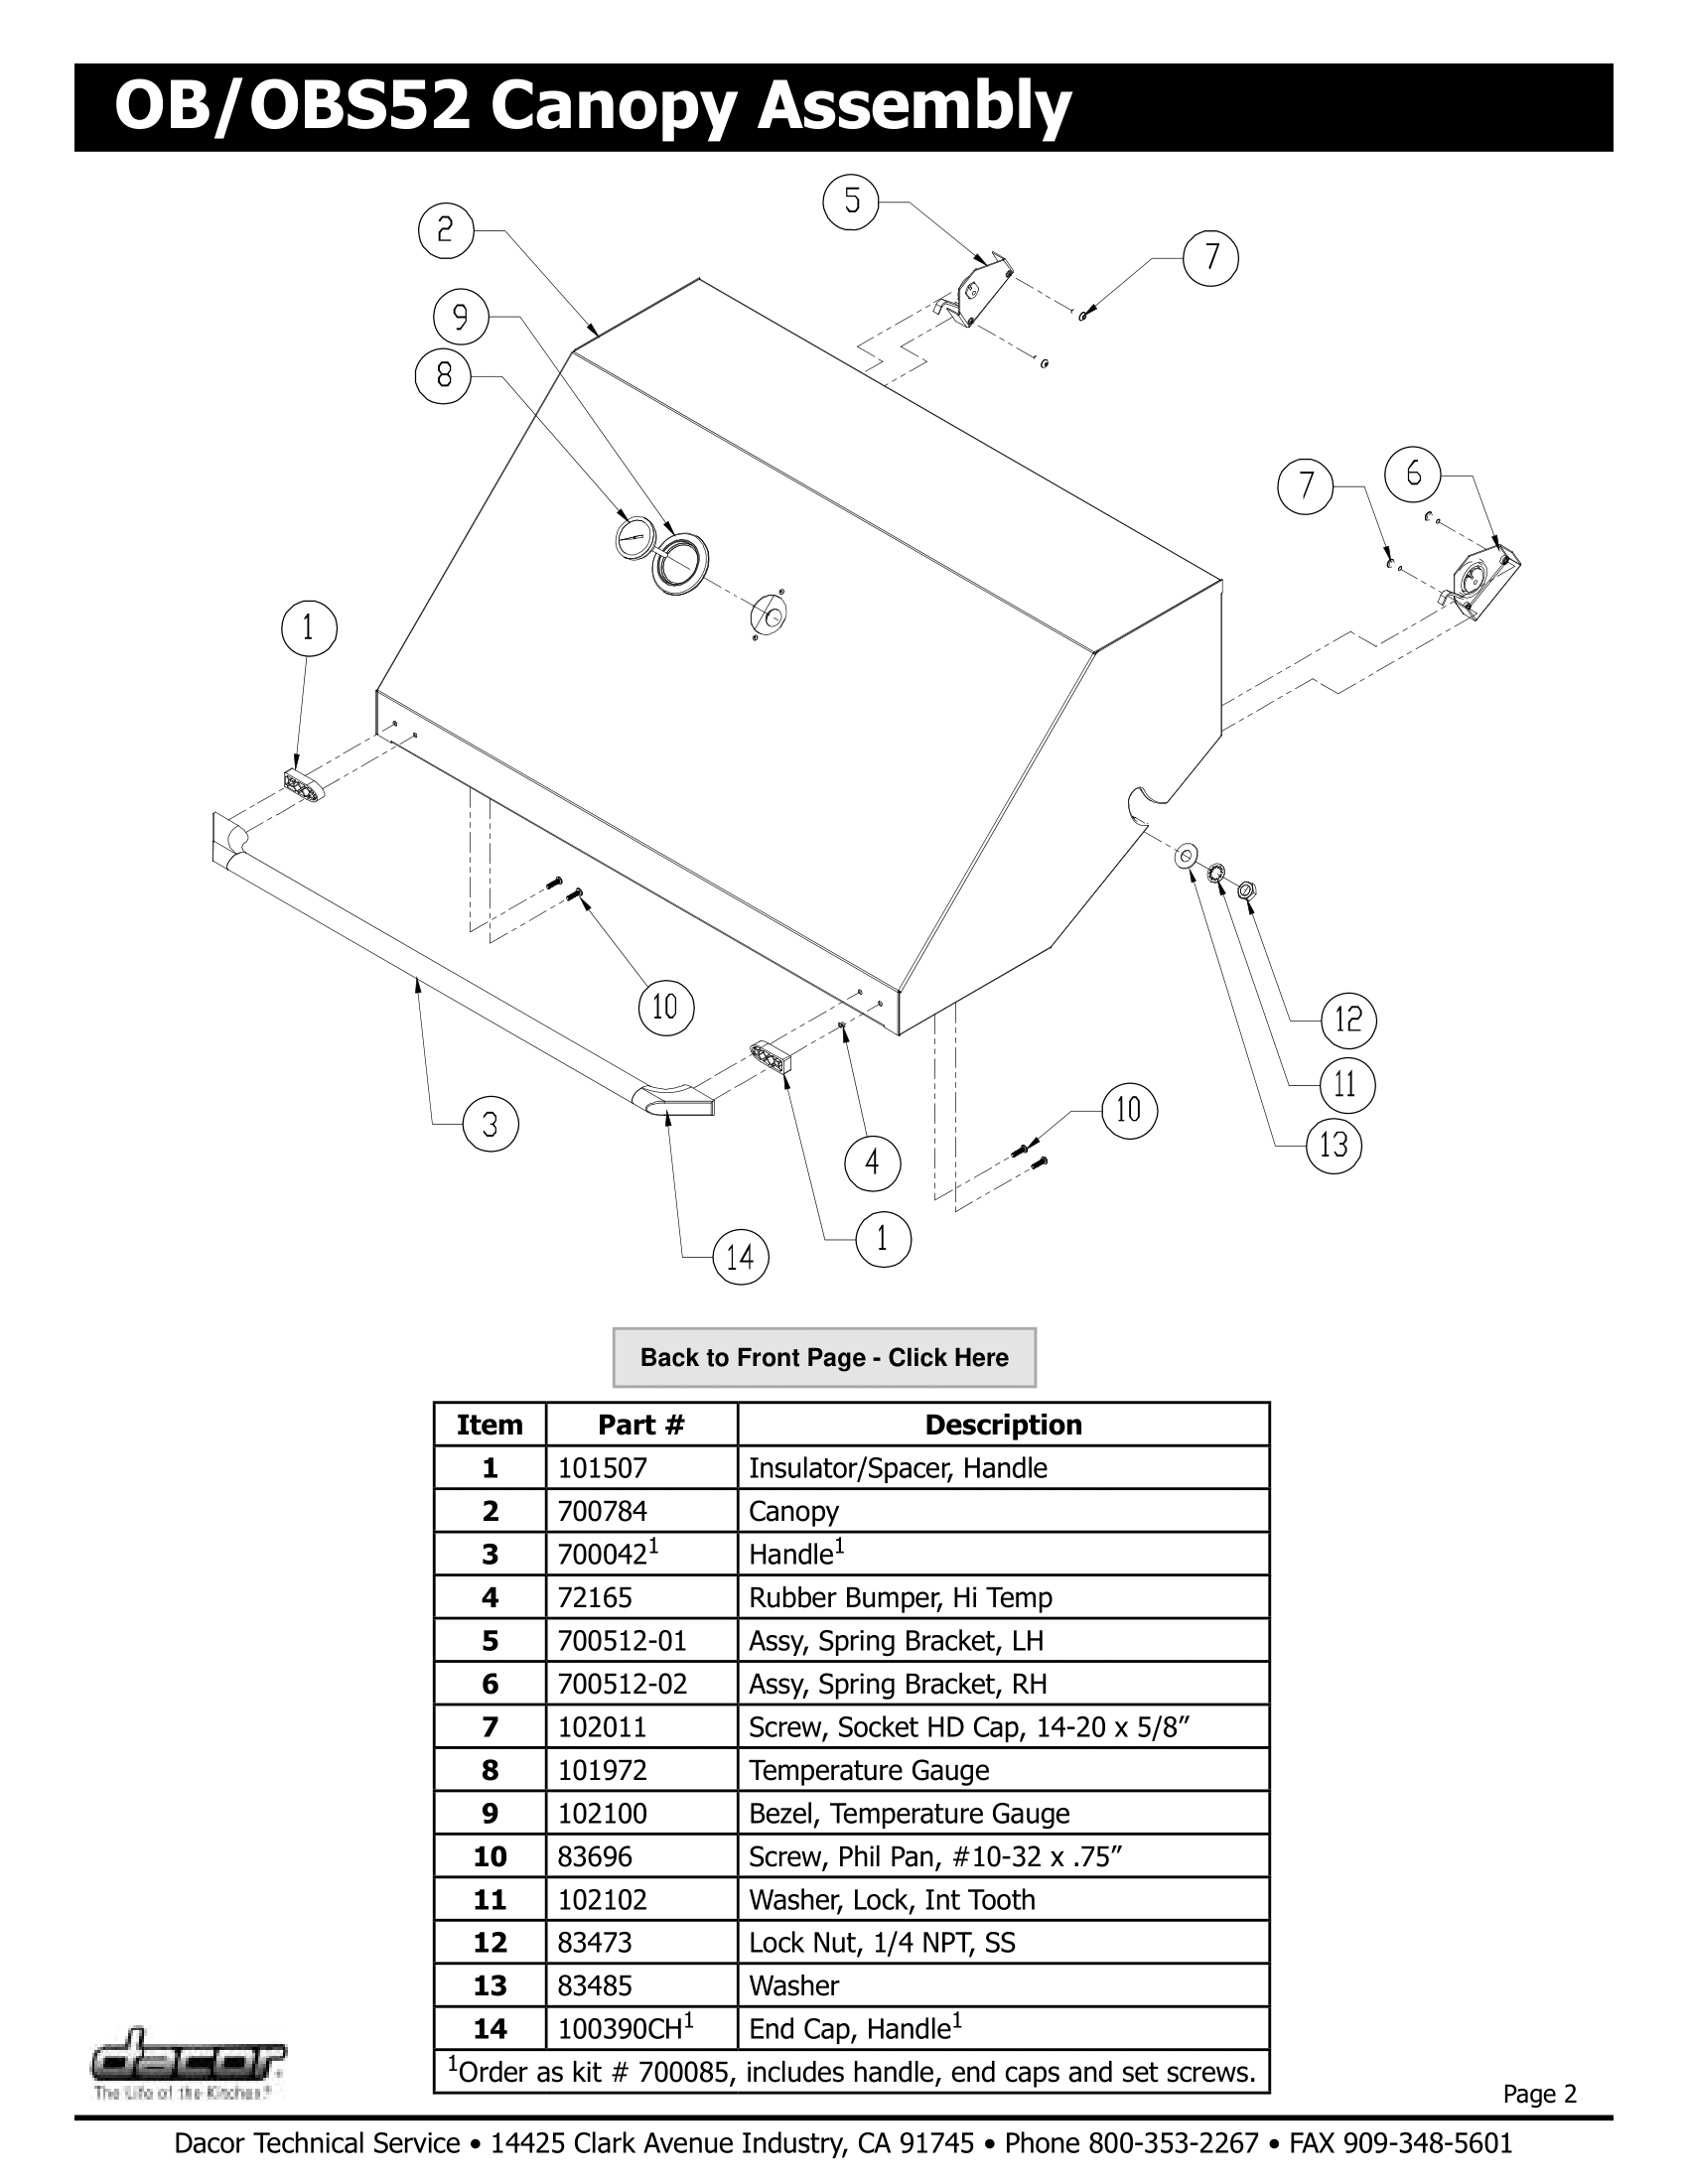 Dacor OBS52 Canopy Assembly Schematic